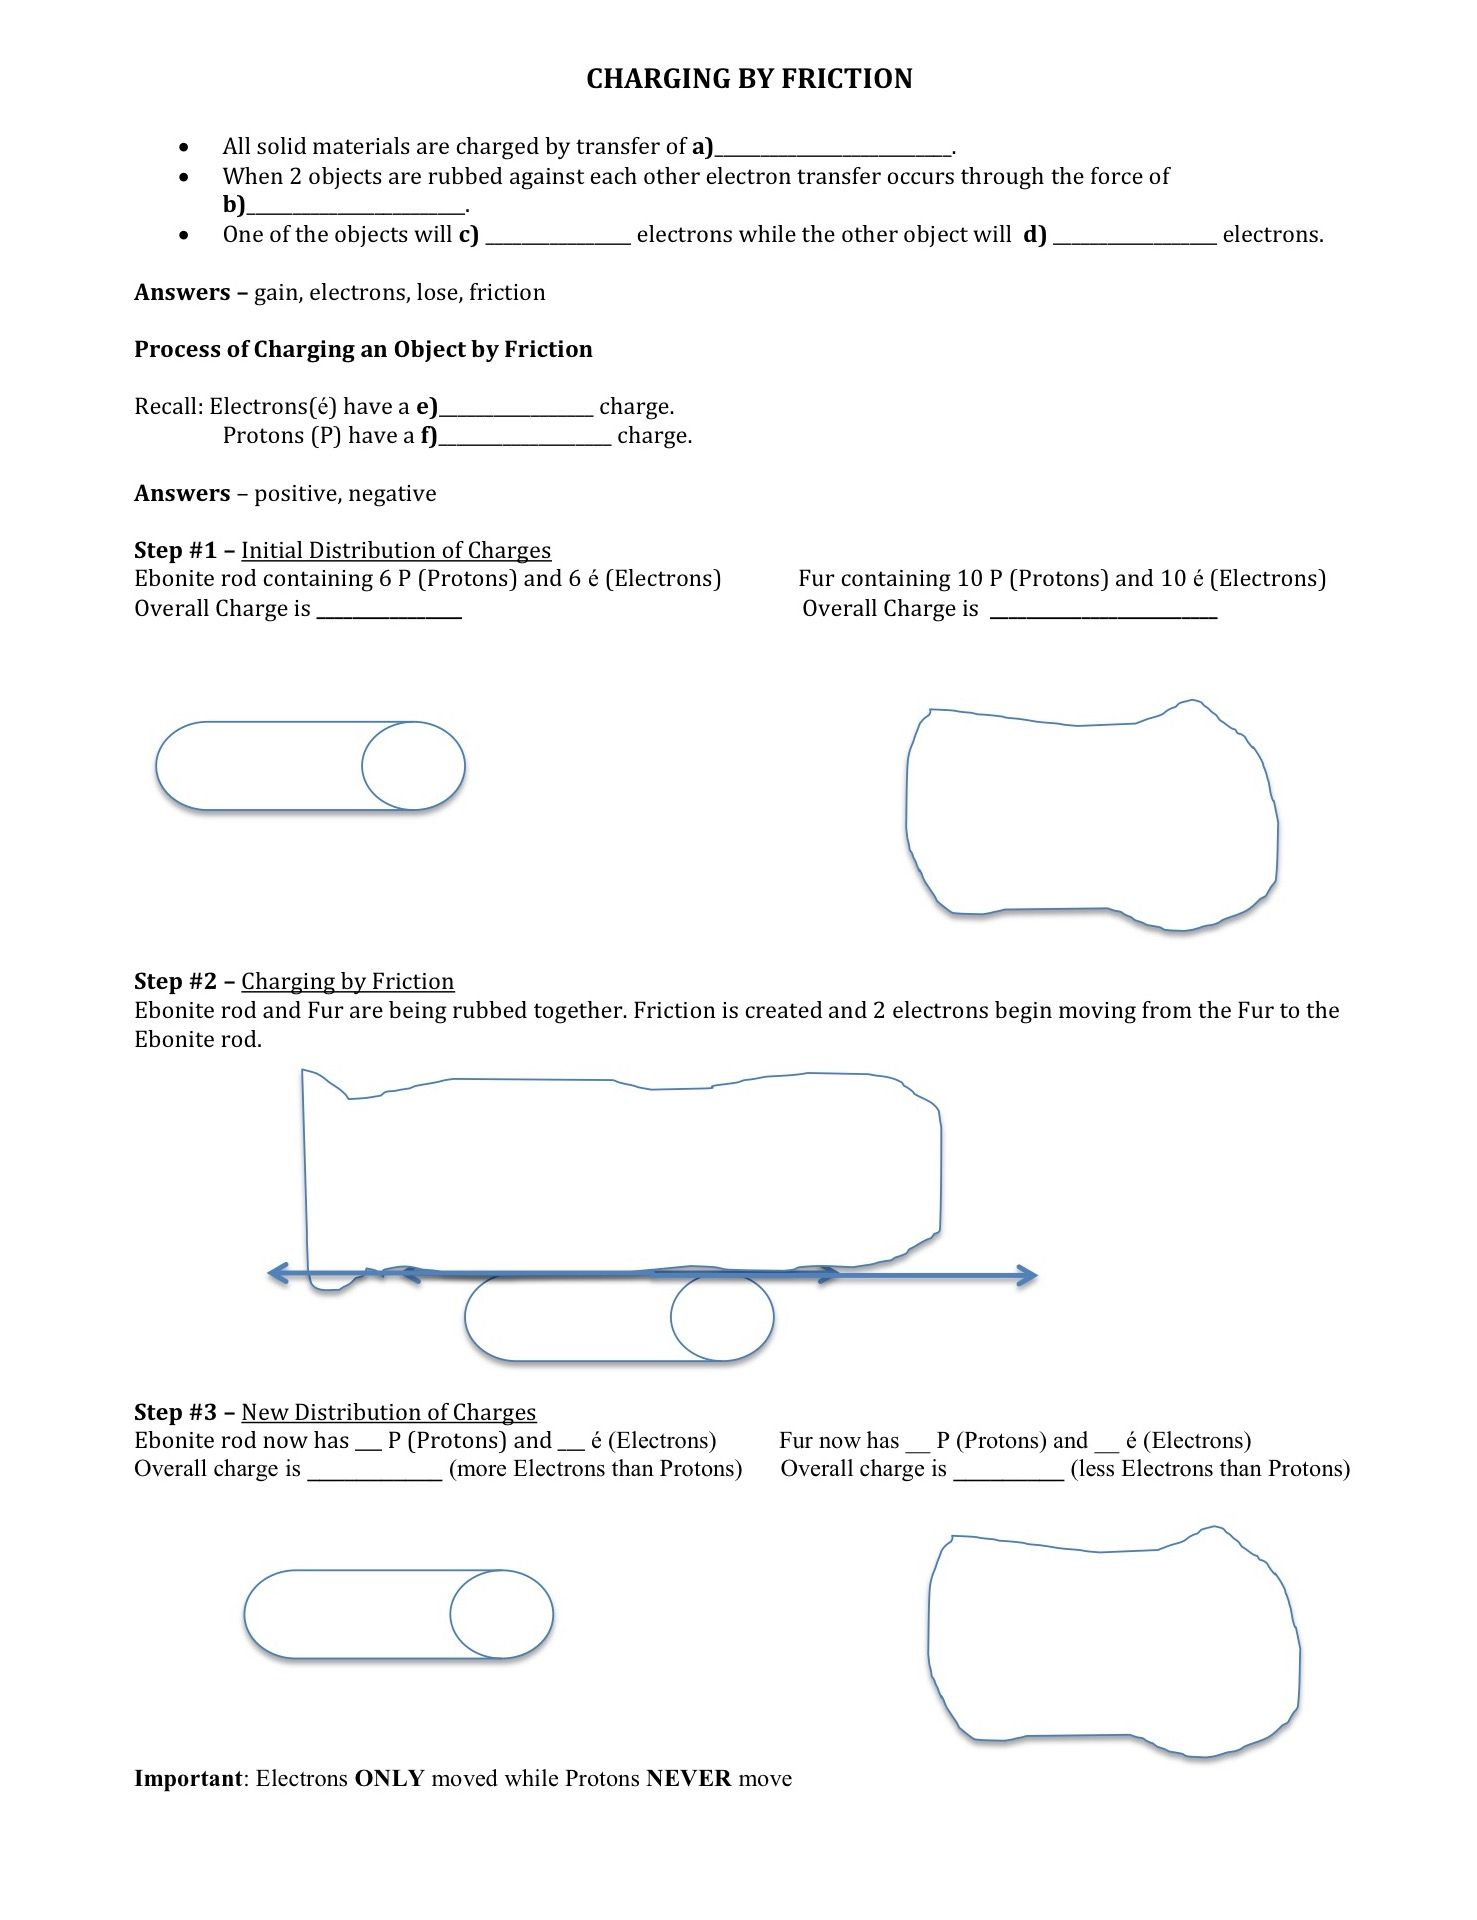 medium resolution of Friction Worksheets For Elementary   Printable Worksheets and Activities  for Teachers